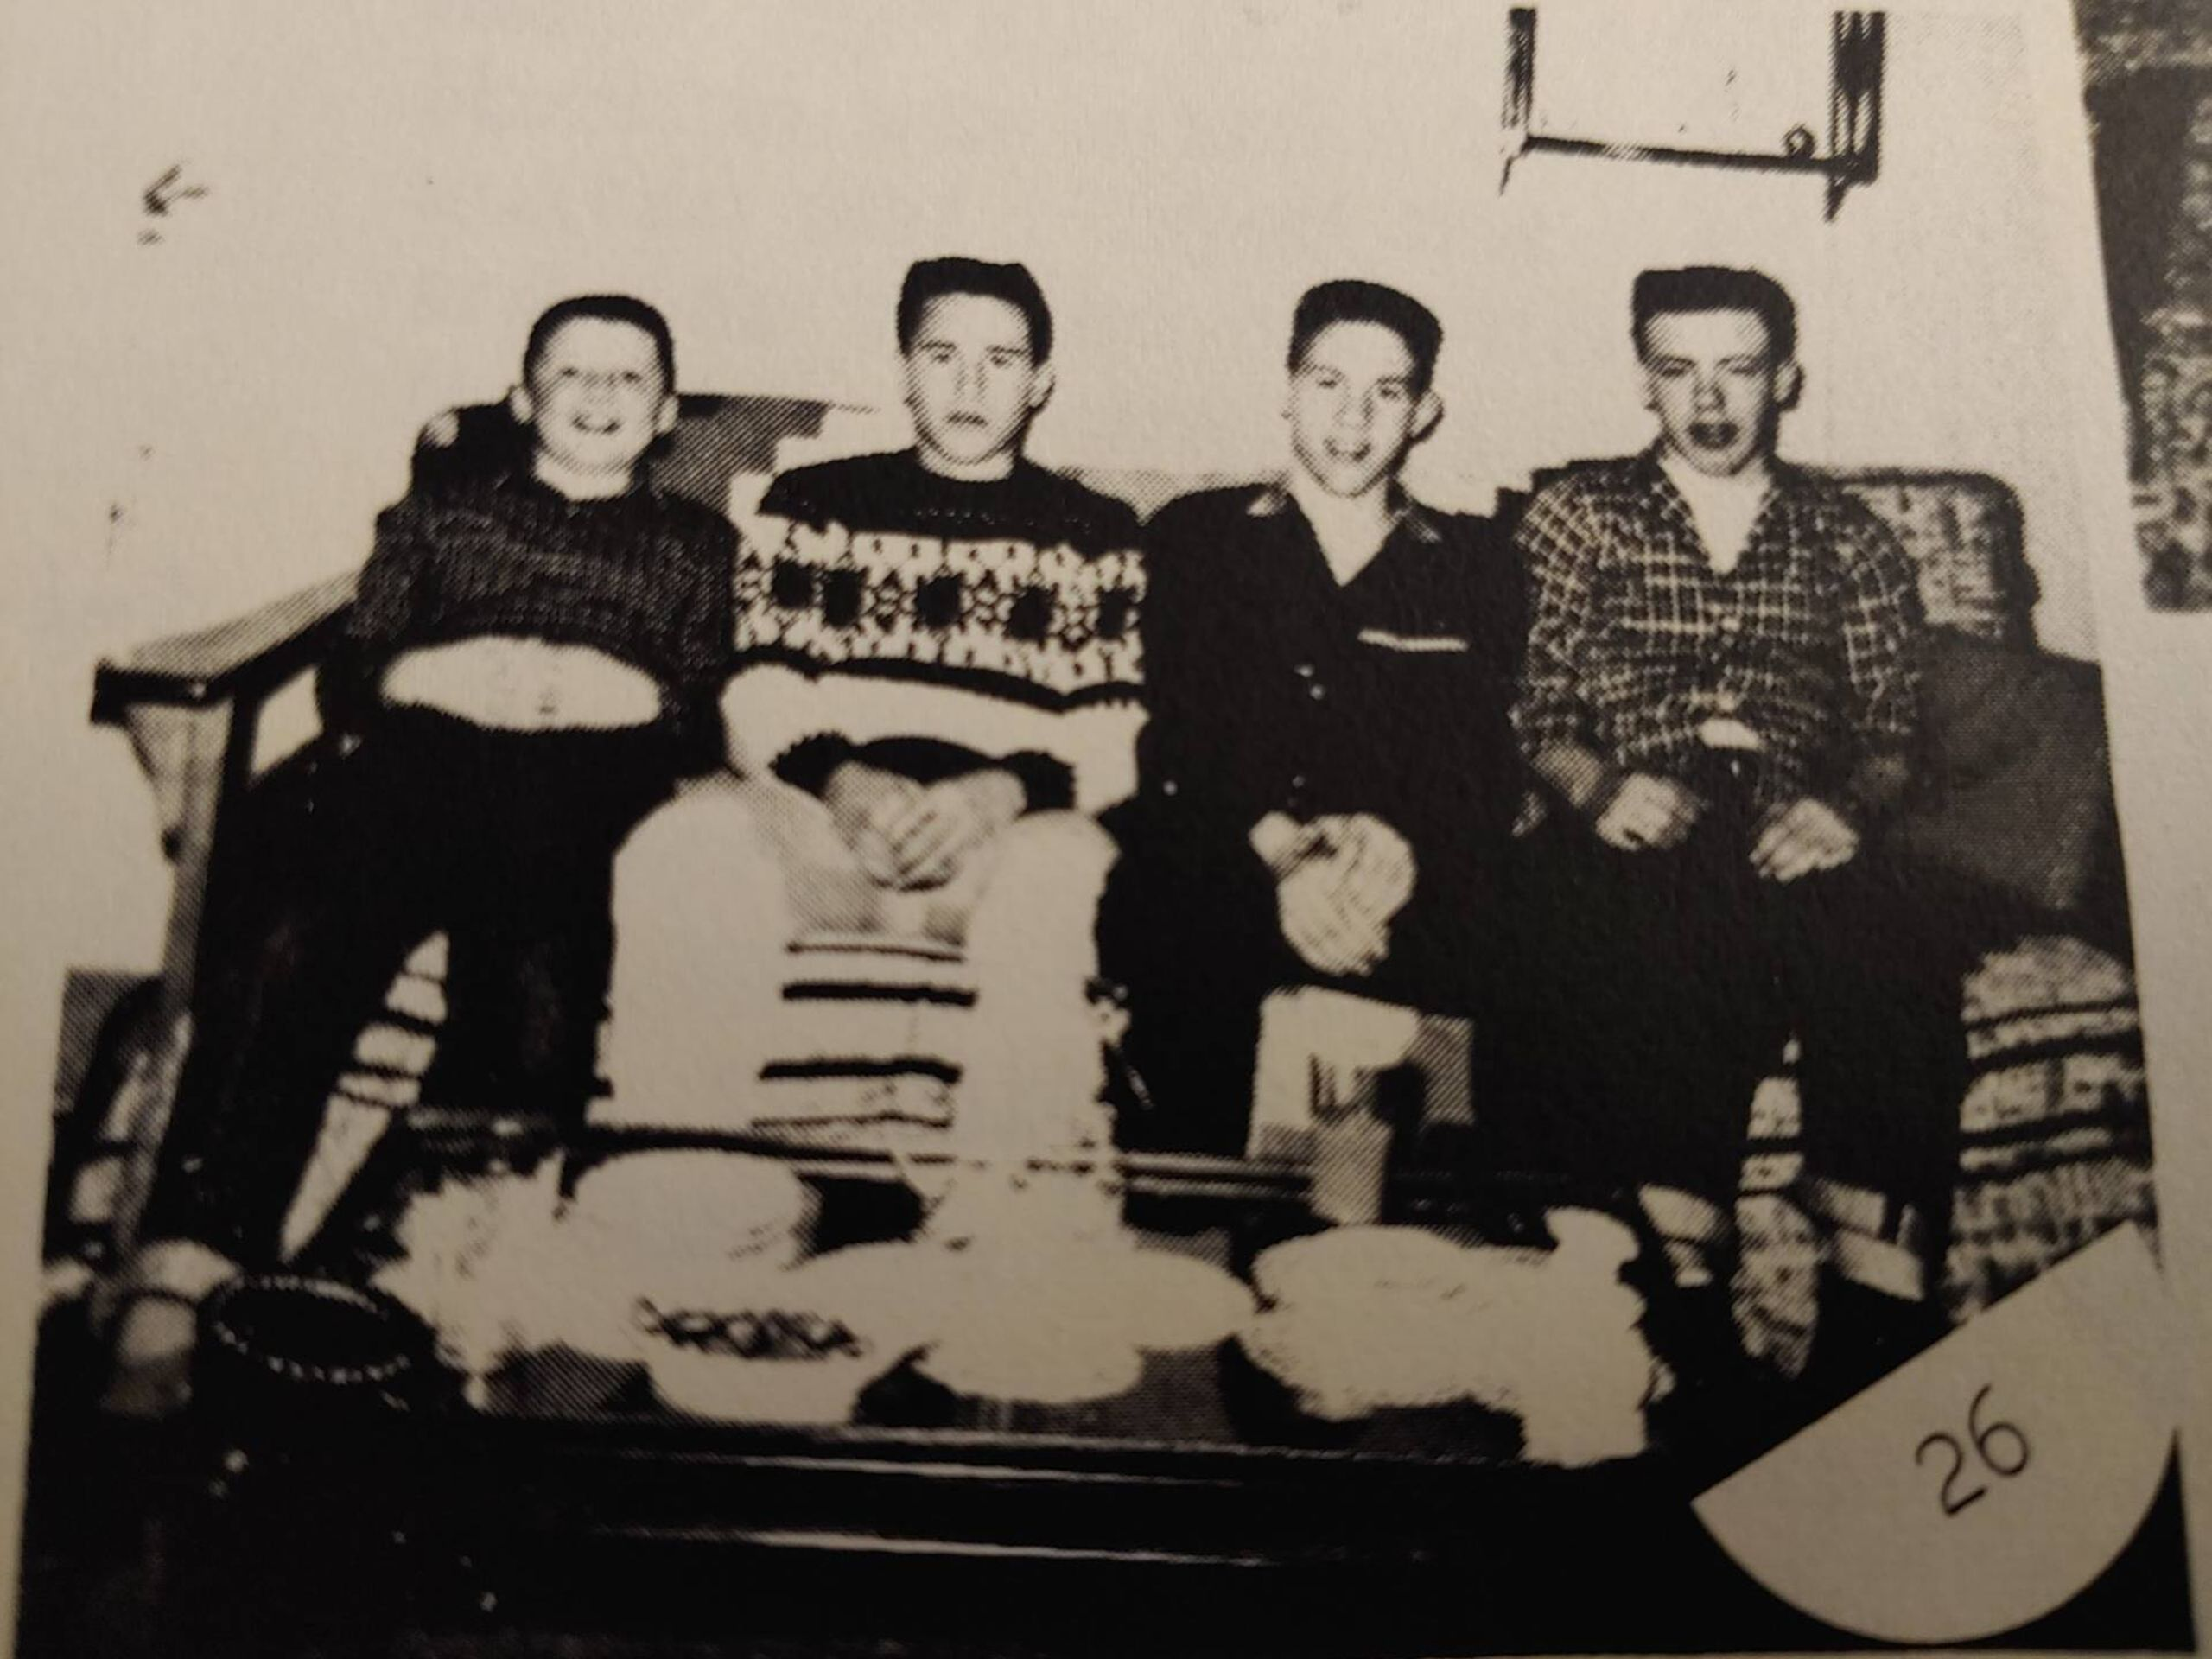 Four children seated on a couch smiling